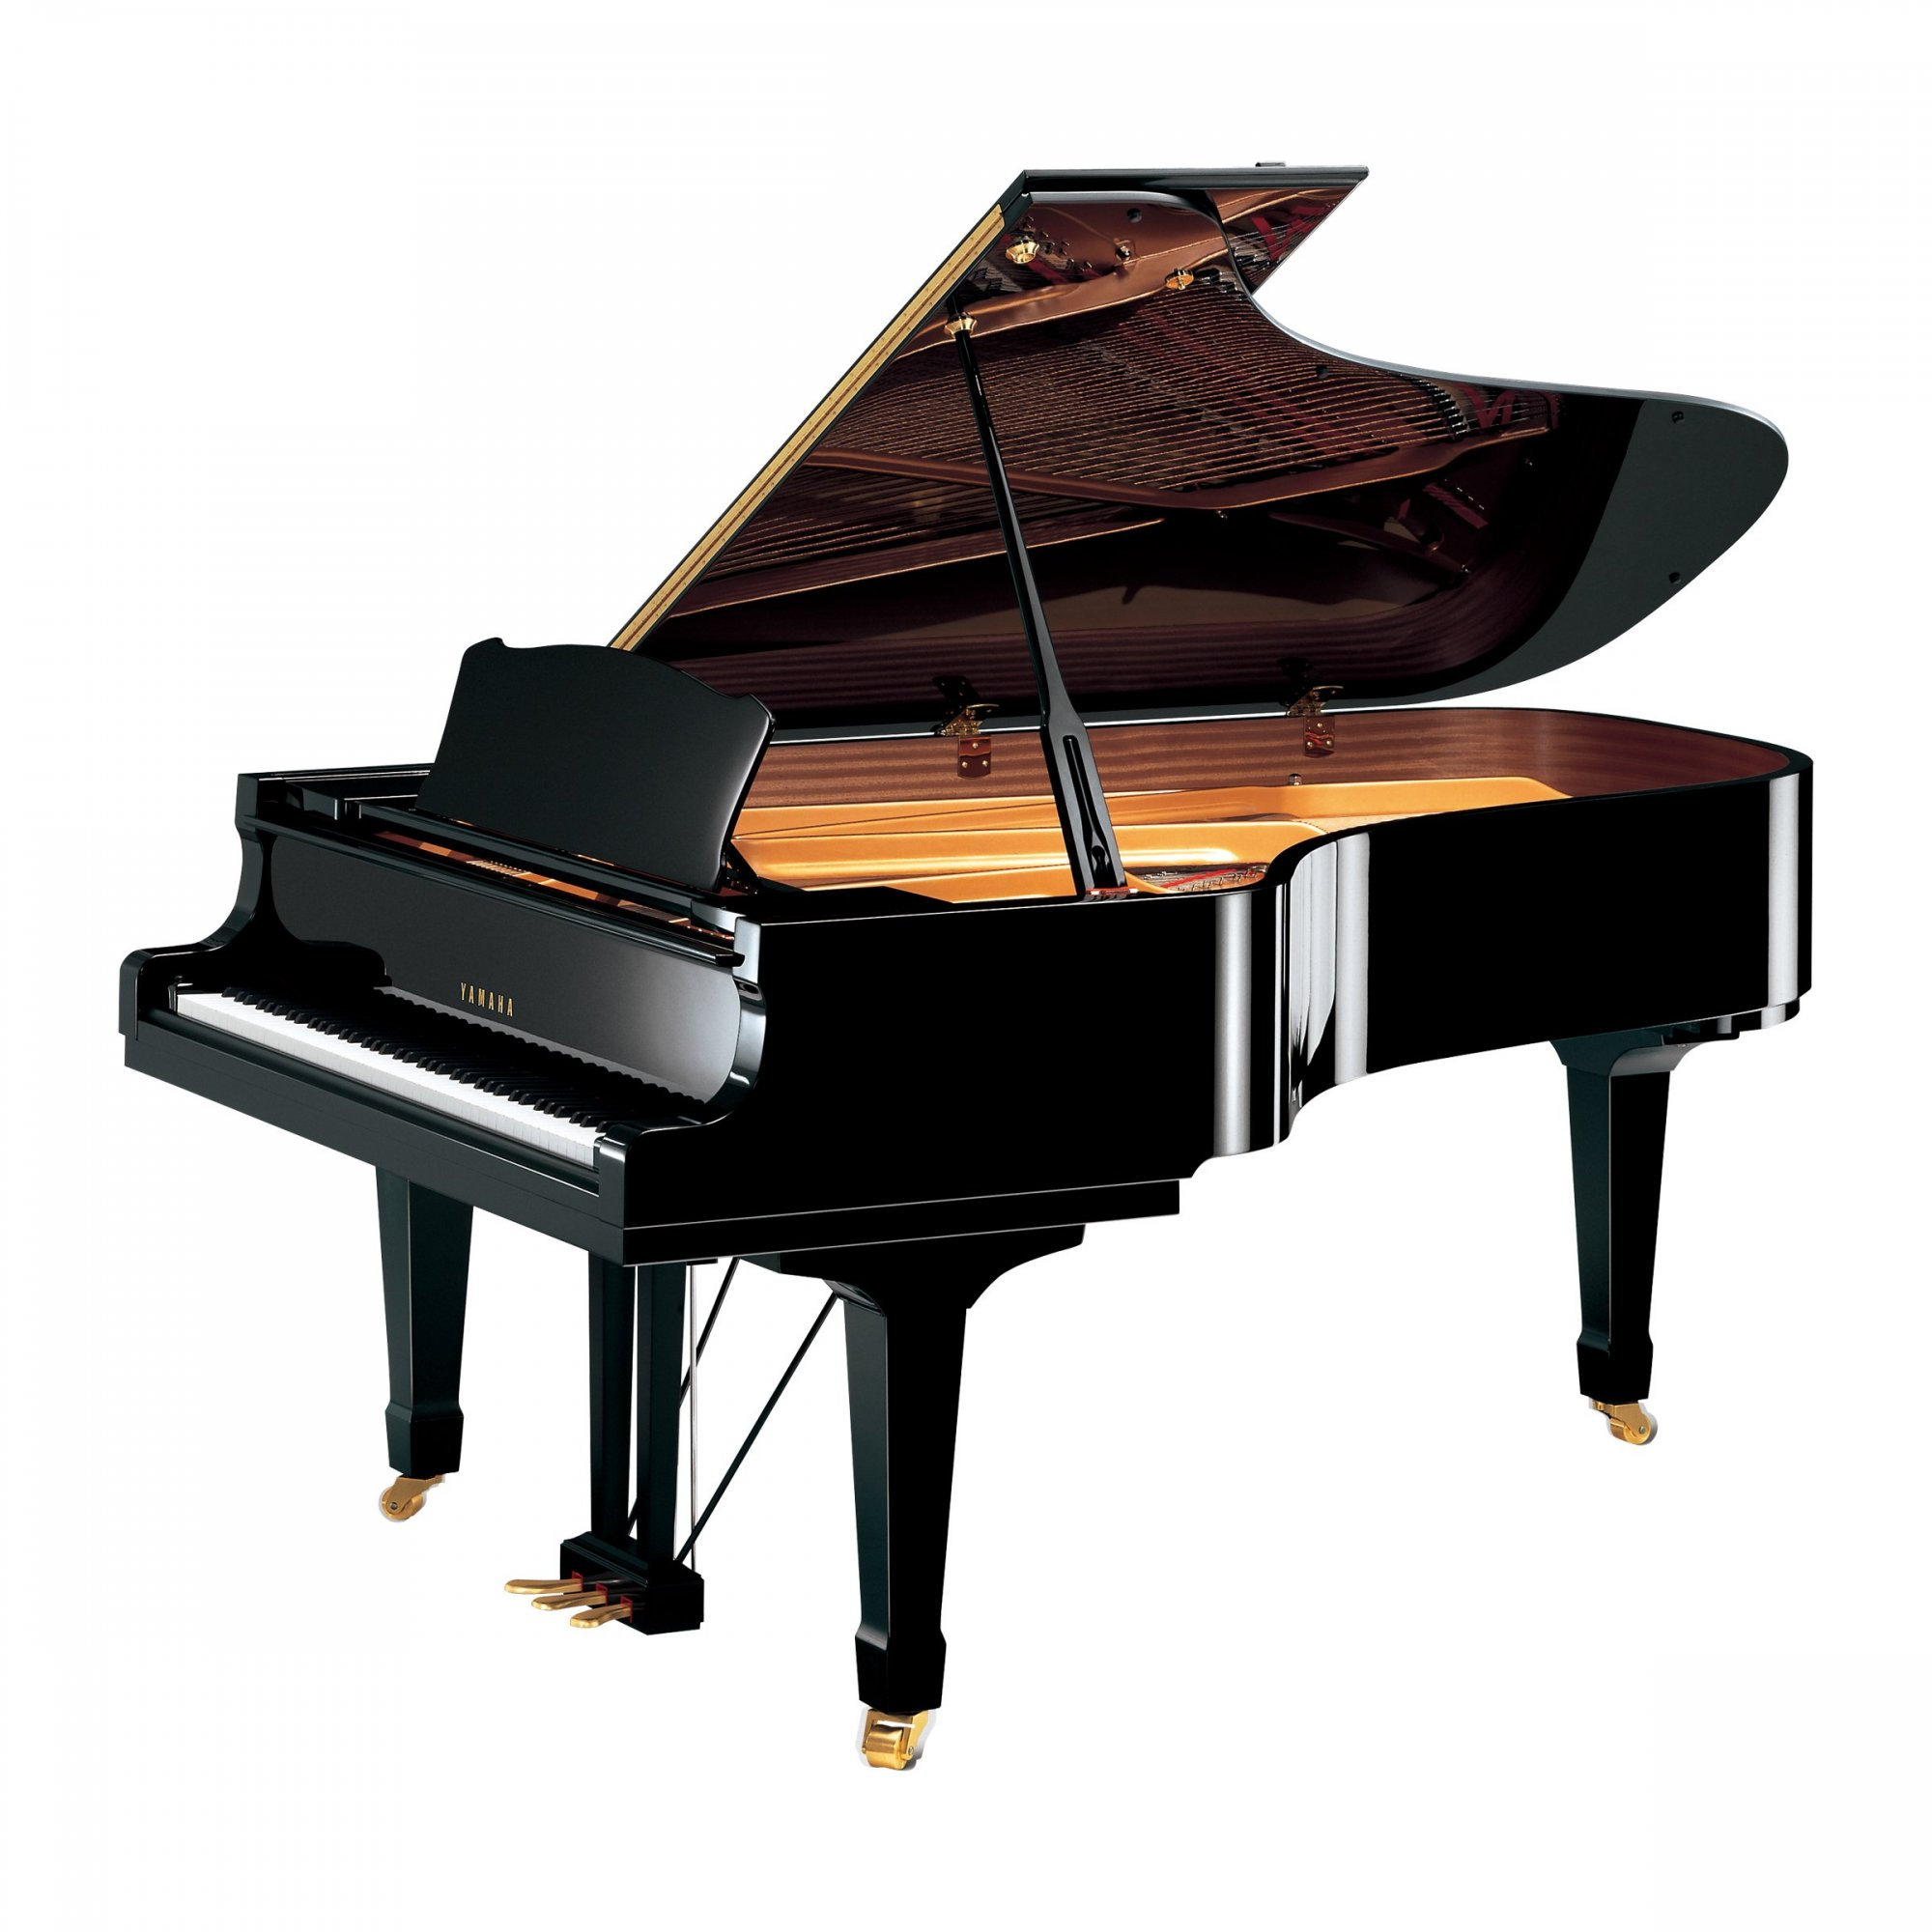 Đàn Piano Yamaha Grand C7